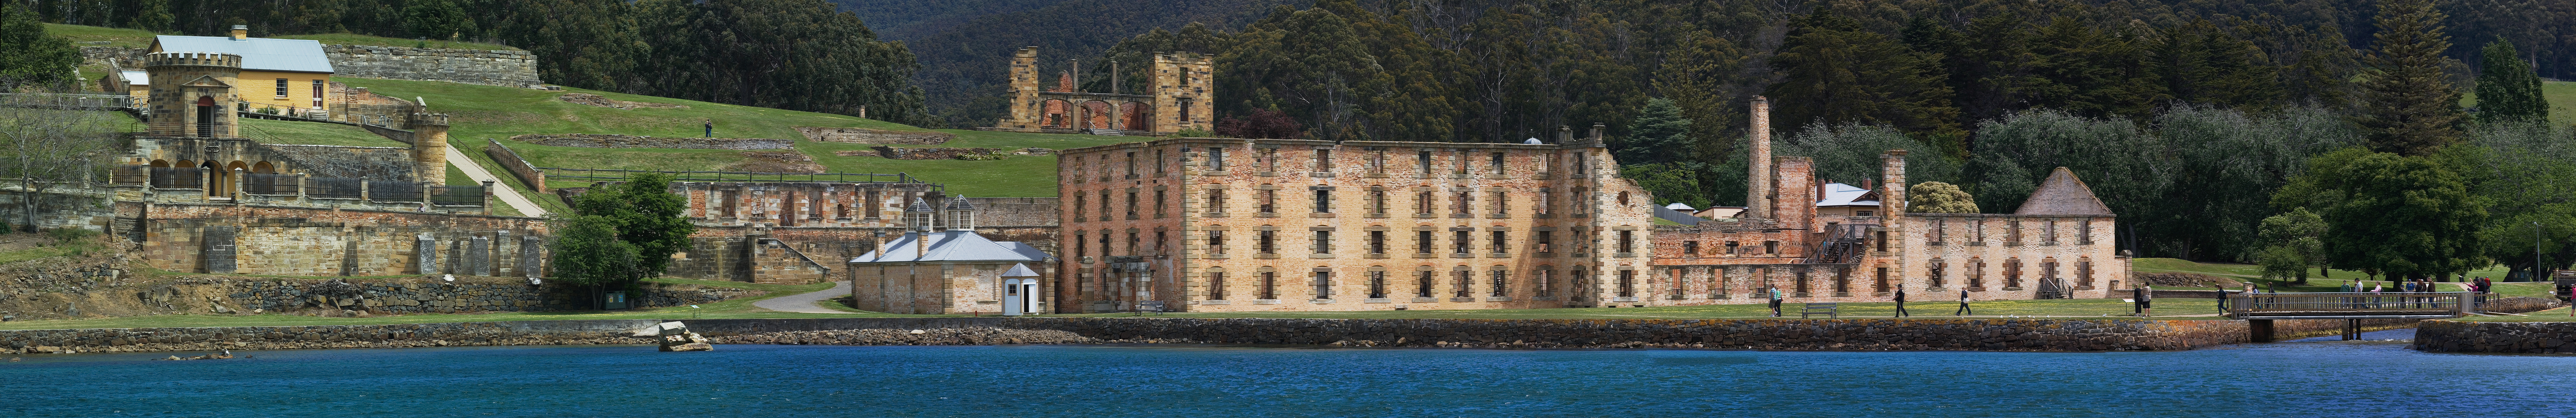 port arthur hindu personals Start studying ap european history chapter 25 section 3 the 1857 and 1858 insurrection by muslim and hindu mercenaries in the british formosa port arthur.